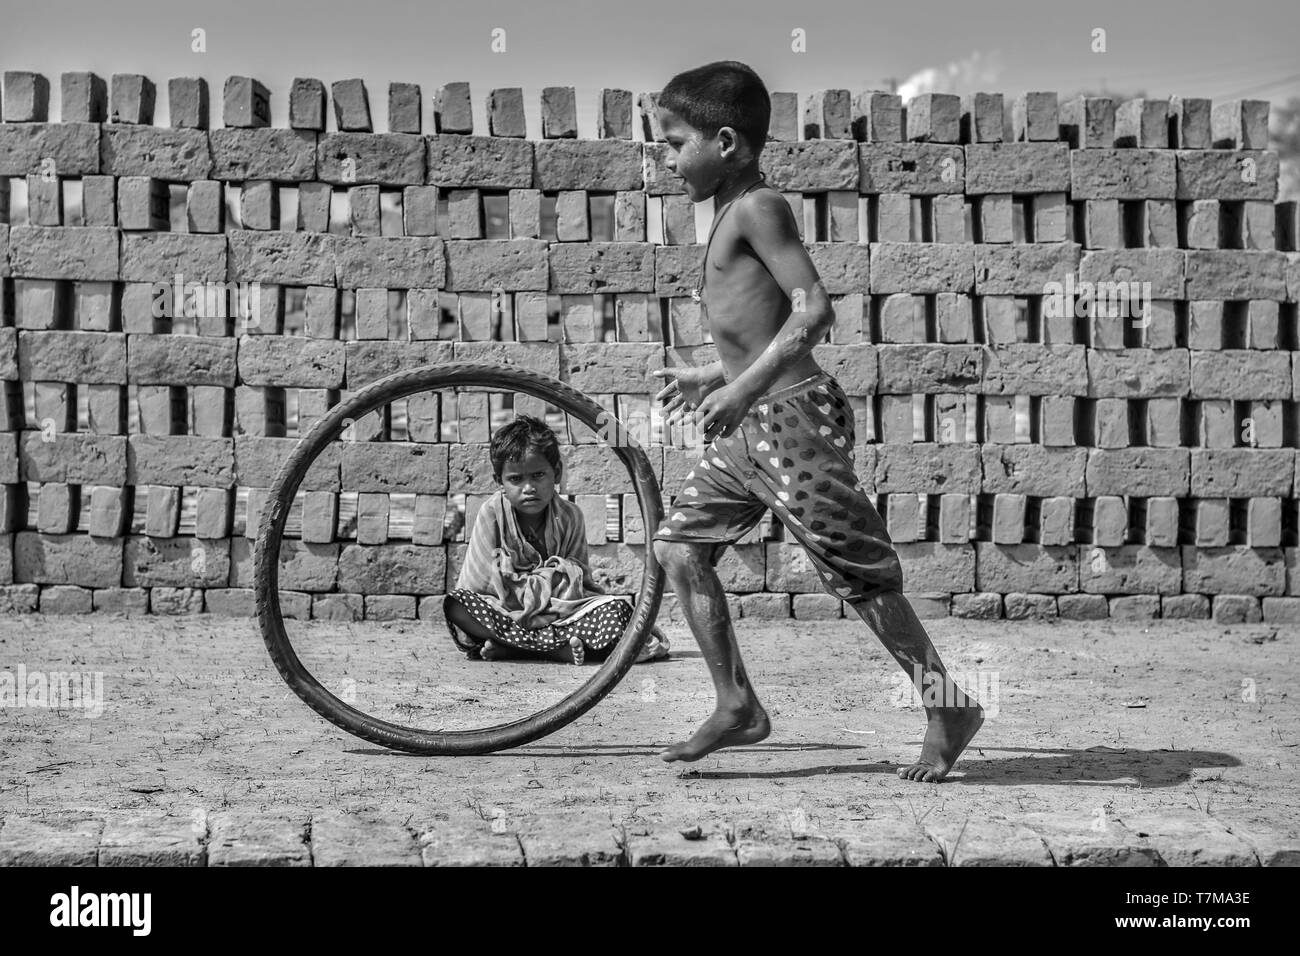 Kolkata : dated 04/02/2018, A village near brick kilin , people live in the mud houses, children play to run with waste tyre bear feet, small girls si Stock Photo